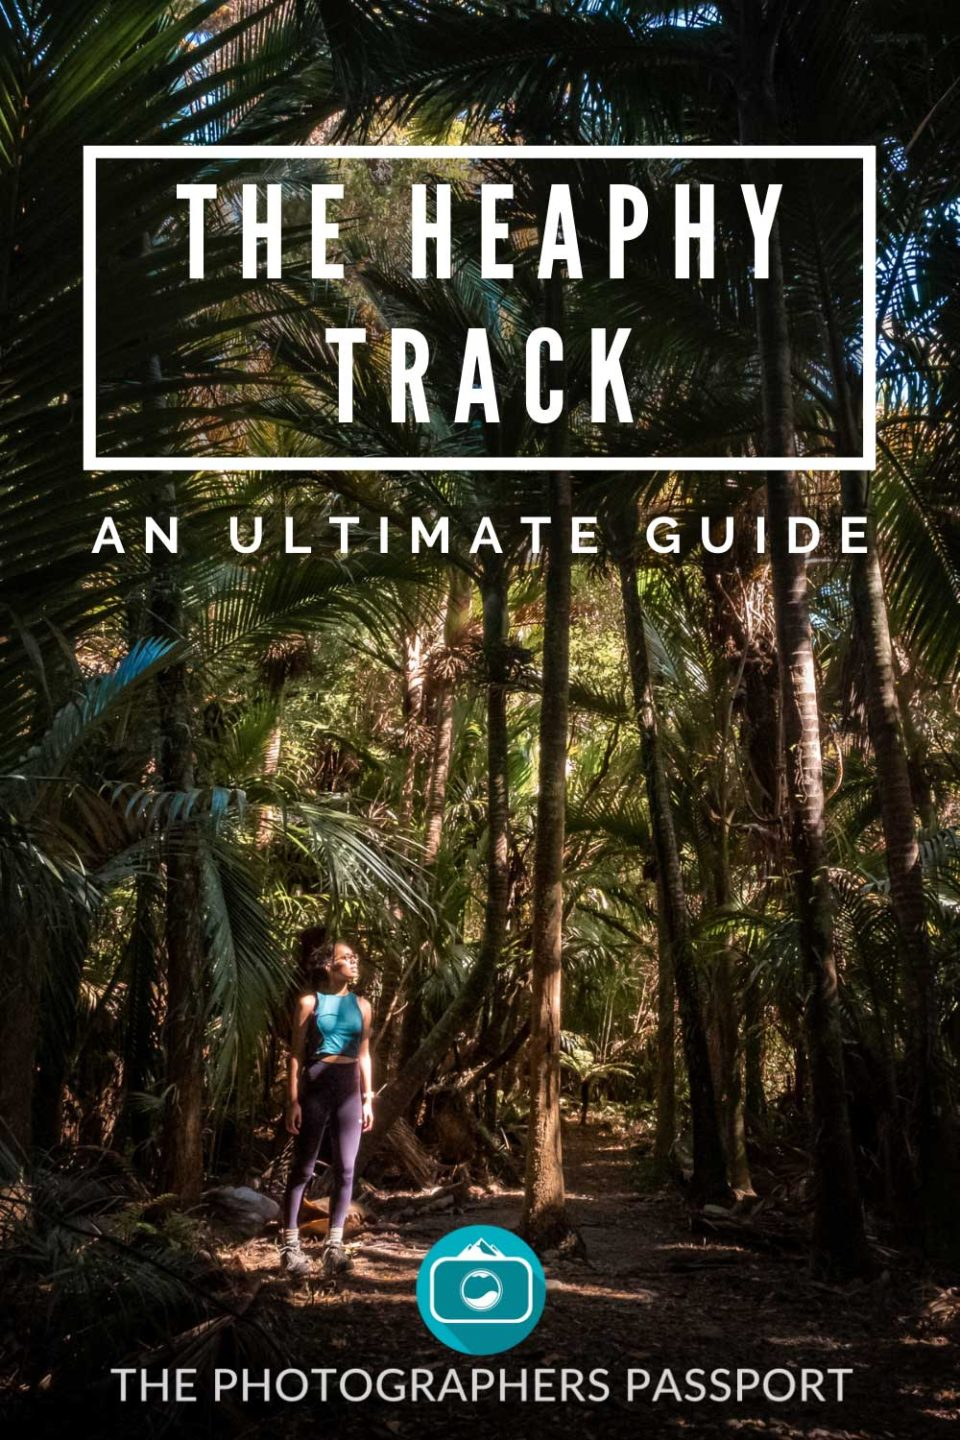 The Heaphy Track is an unbelievable trail set in the heart of Kahurangi National Park in New Zealand. Click here to learn more about this incredible track.